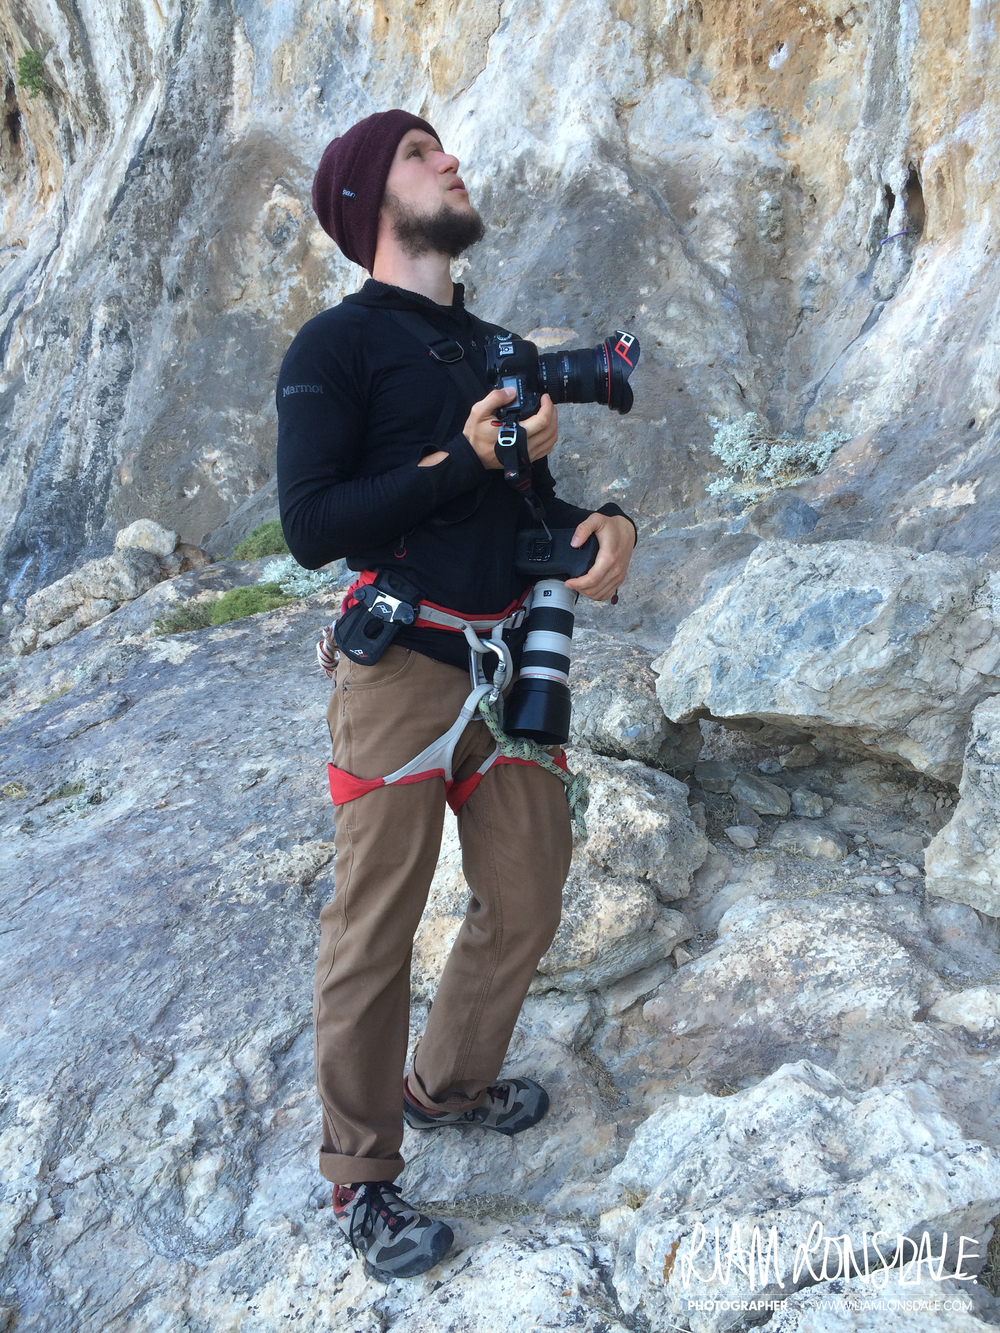 Scouting the bottom of the crag. CAPTURE PRO is visible mounted on my harness with the PRO PAD for maximum comfort. CLUTCH is on my right hand, on the 5d. SLIDE is over my shoulder, long lens on the end.